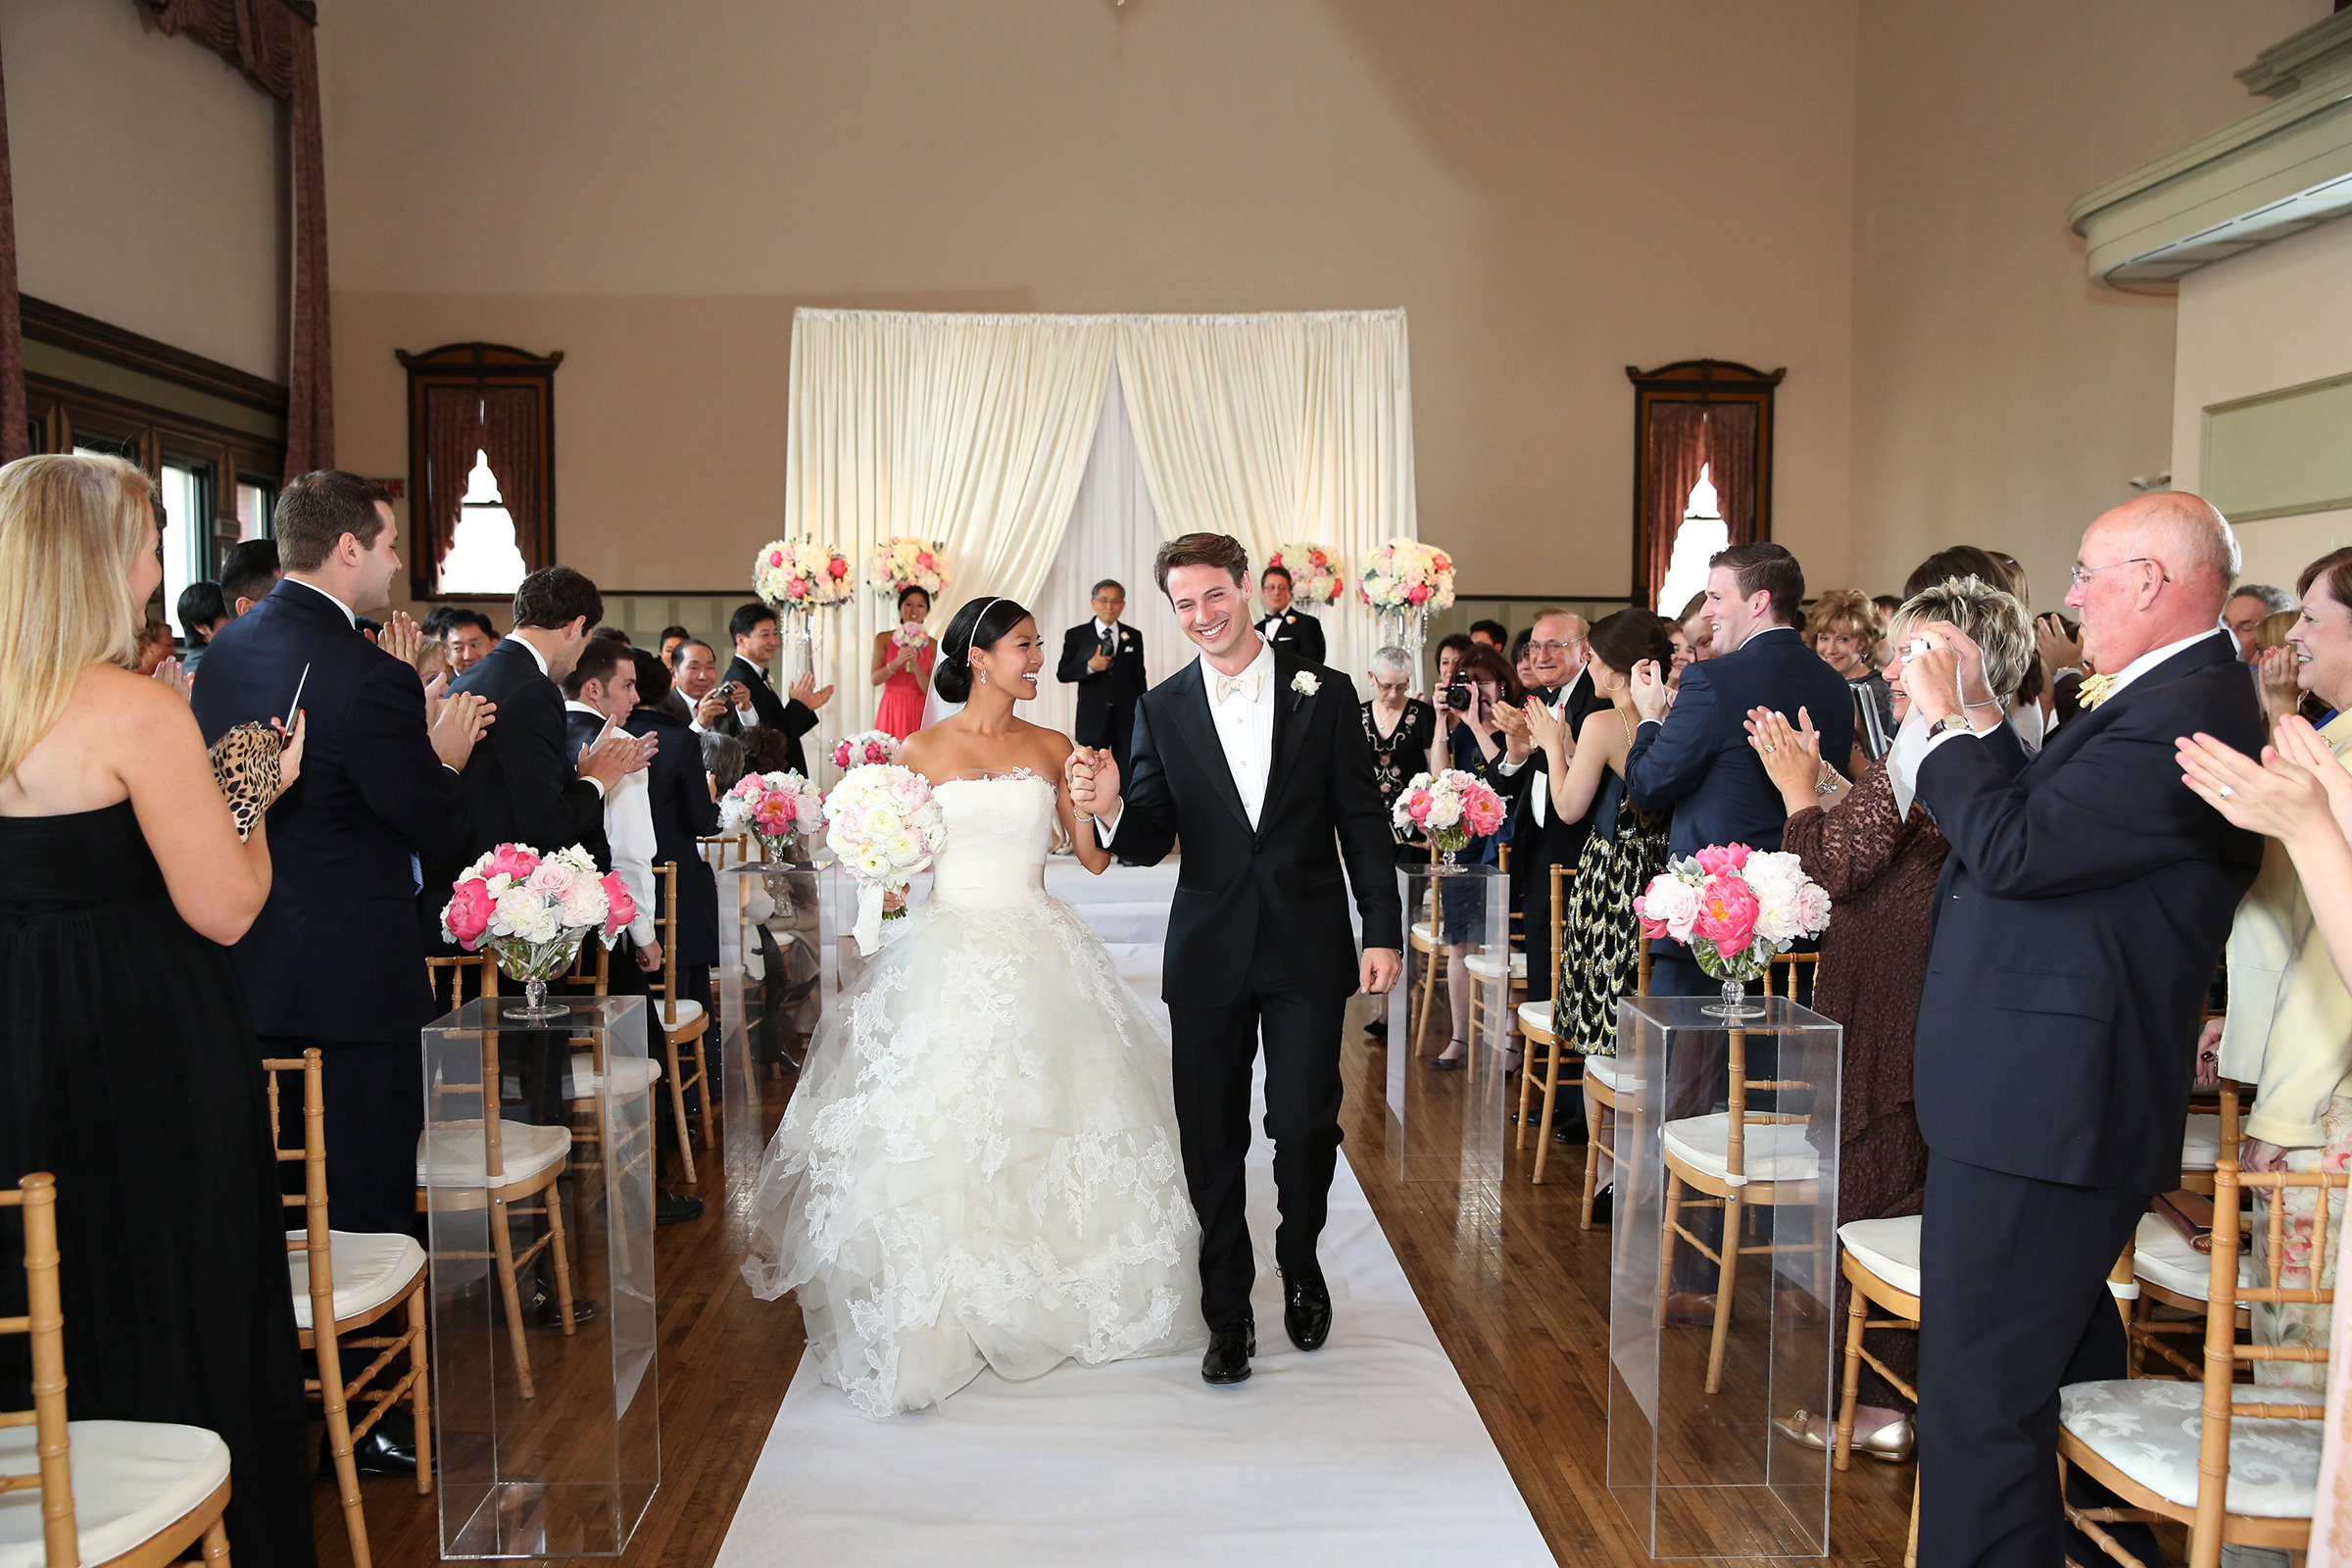 Bride and groom walk down the aisle - photo by Kenny Kim Photography